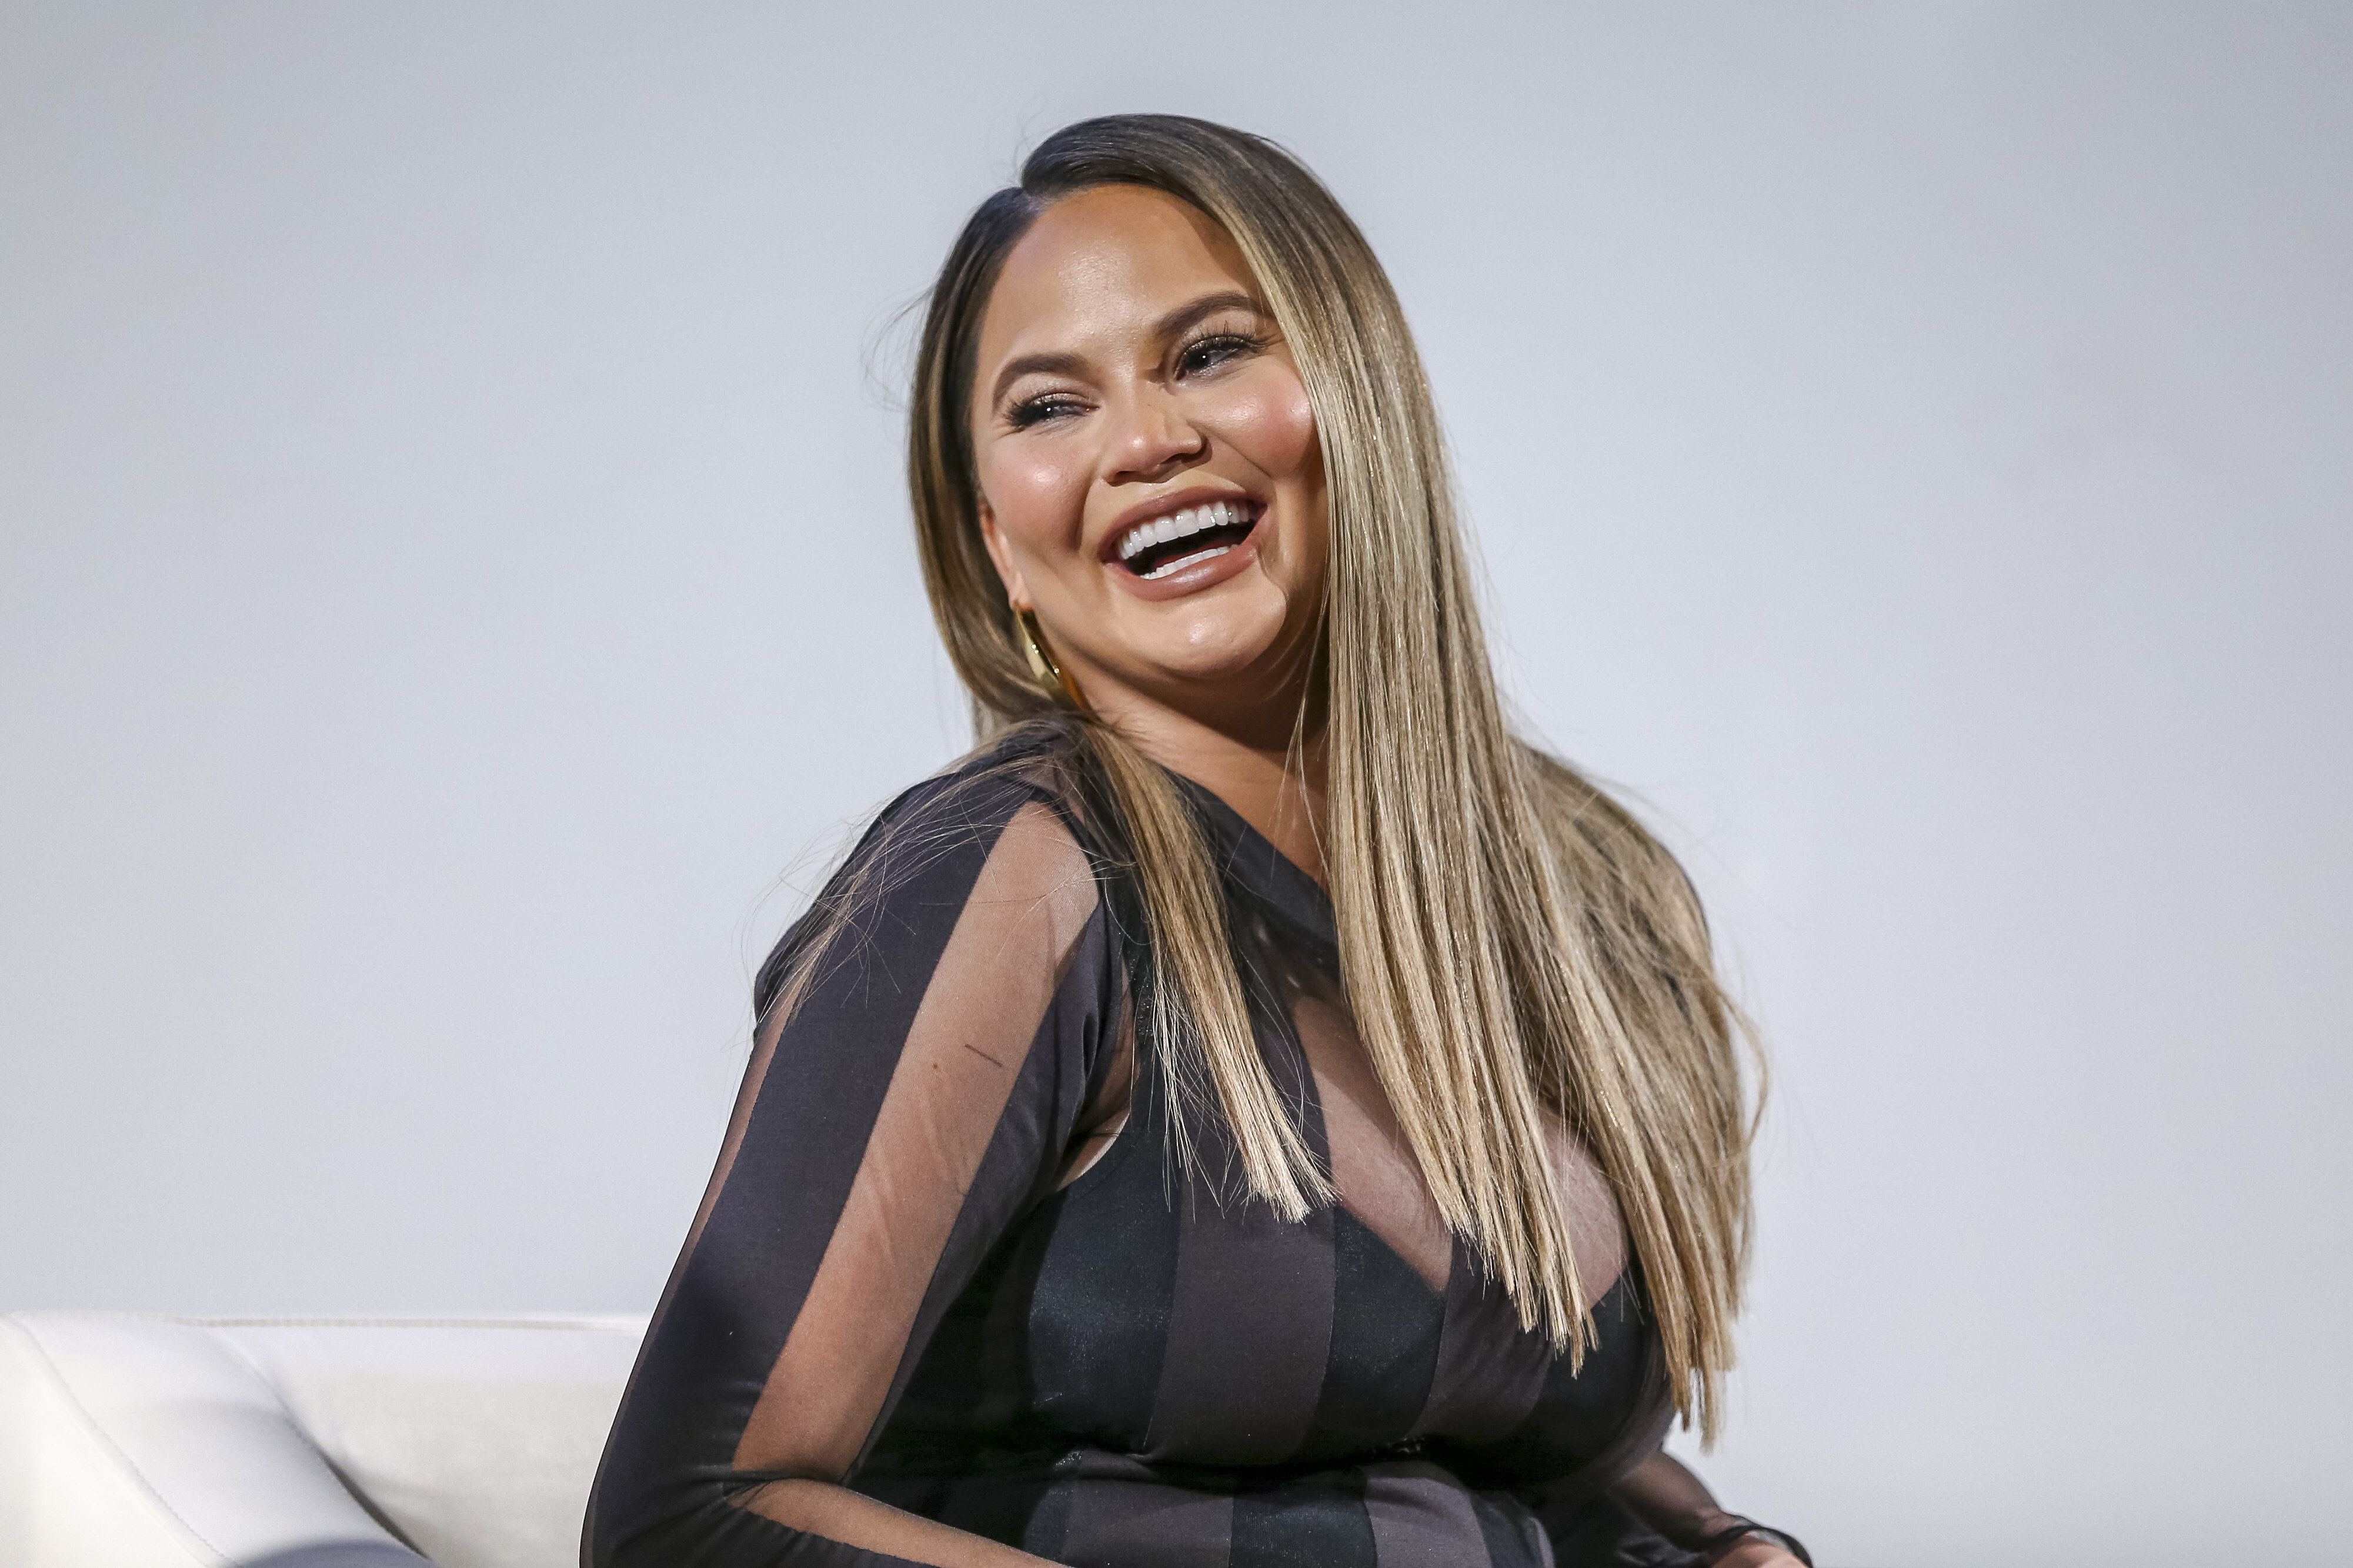 LOS ANGELES, CA - MAY 01:  Chrissy Teigen attends Lip Sync Battle FYC Event Screening and Reception at Paramount Studios on May 1, 2018 in Los Angeles, California.  (Photo by Rich Polk/Getty Images for Viacom)